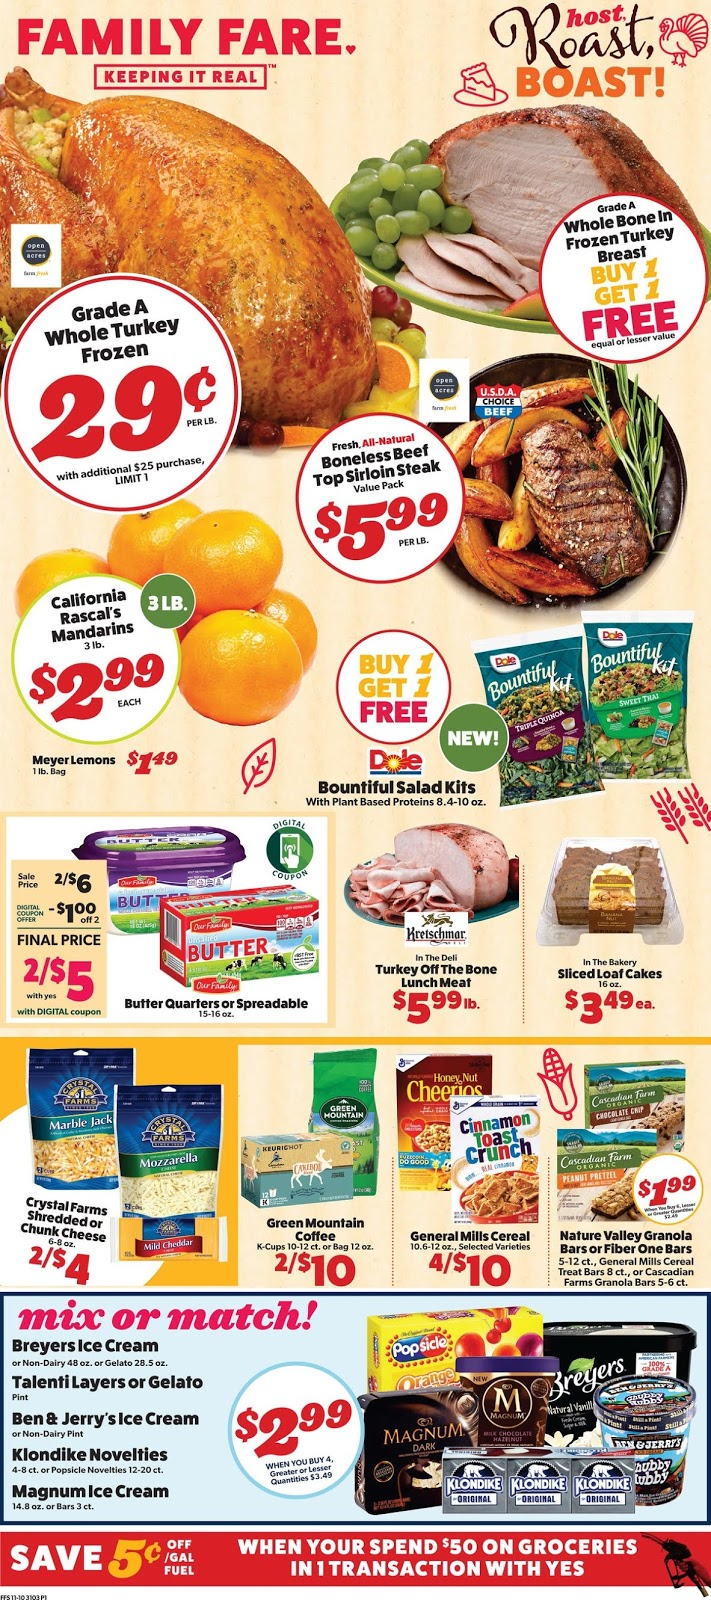 Family Fare Weekly Ad